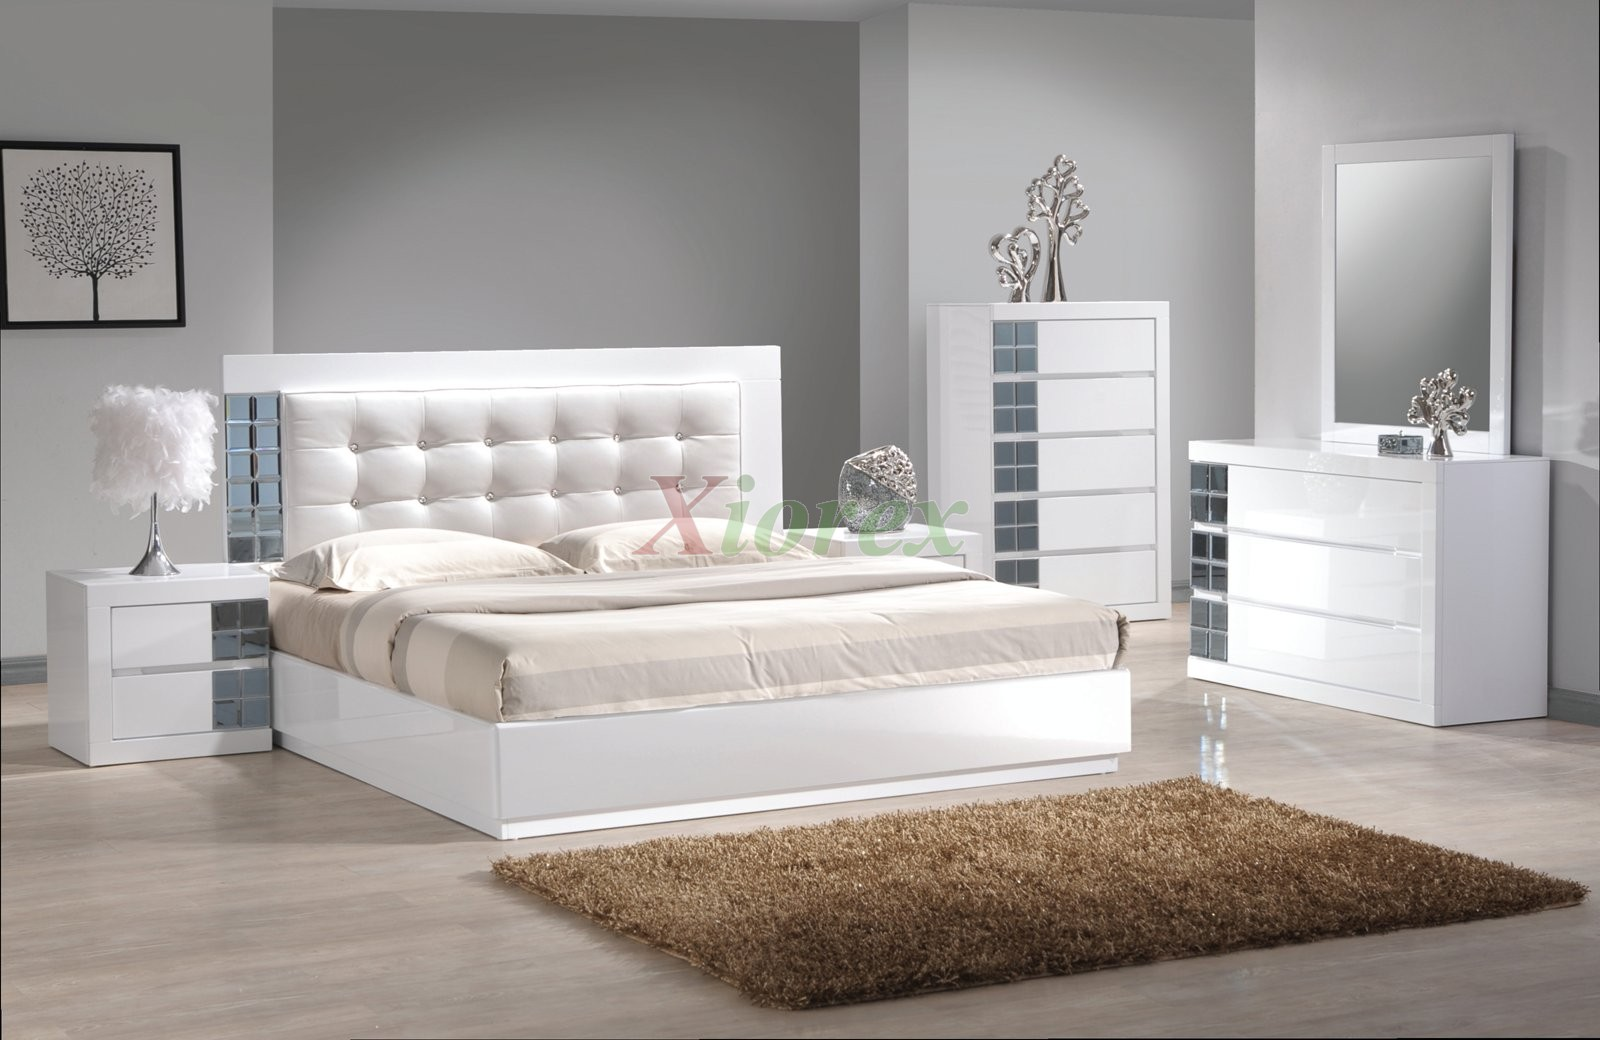 charming upholstered headboards in tufted white with beige bedding on wooden floor matched with gray wall plus charming dresser for bedroom decor ideas